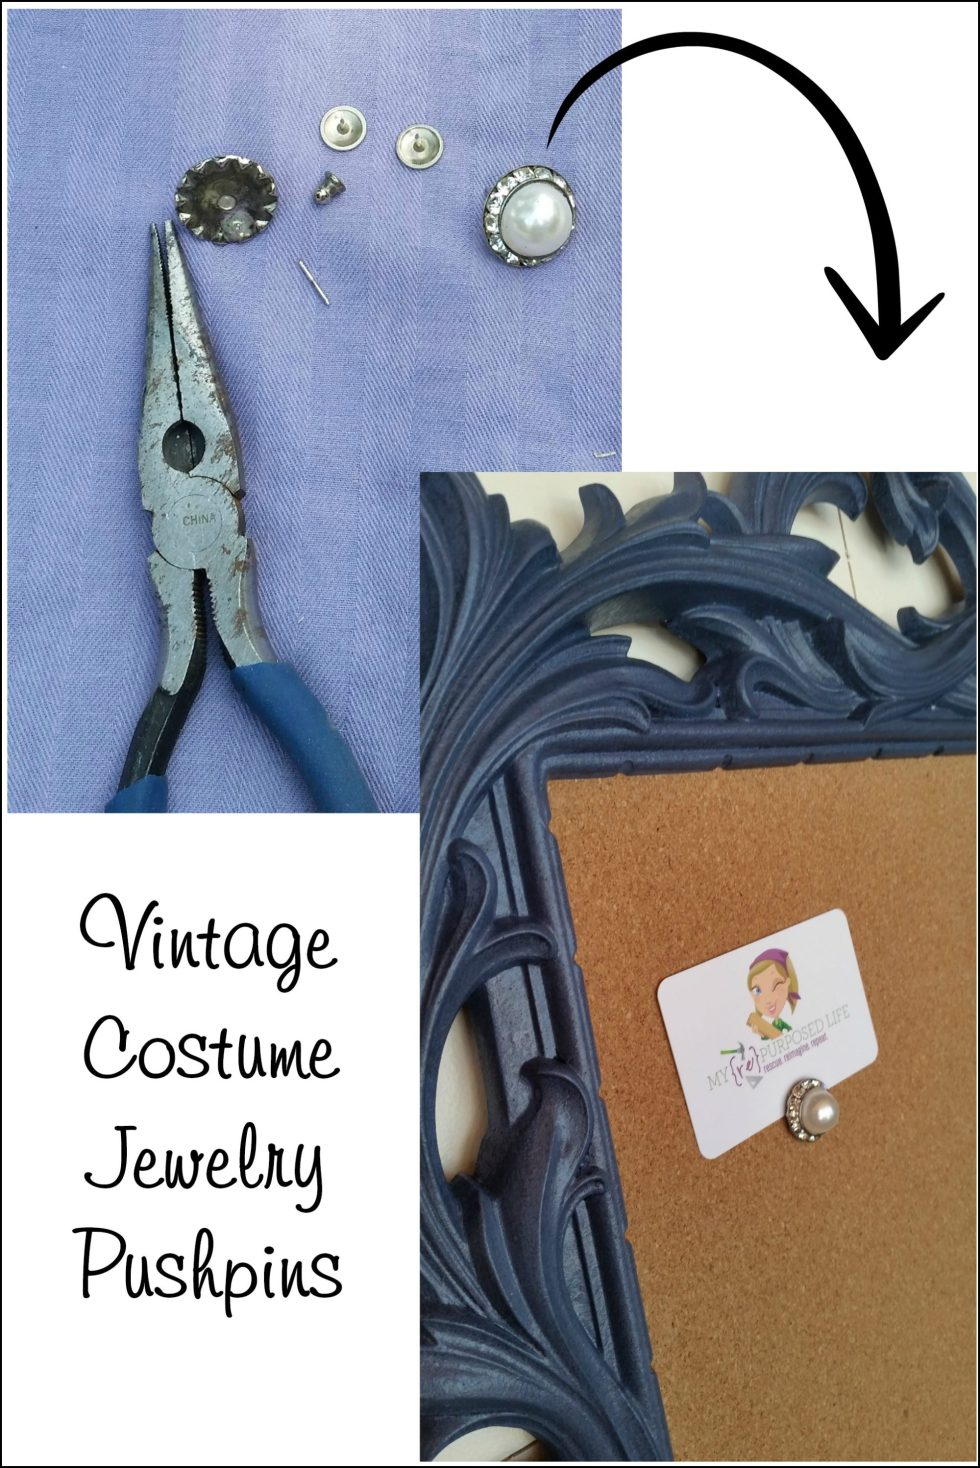 How to make pretty pushpins from vintage costume jewelry